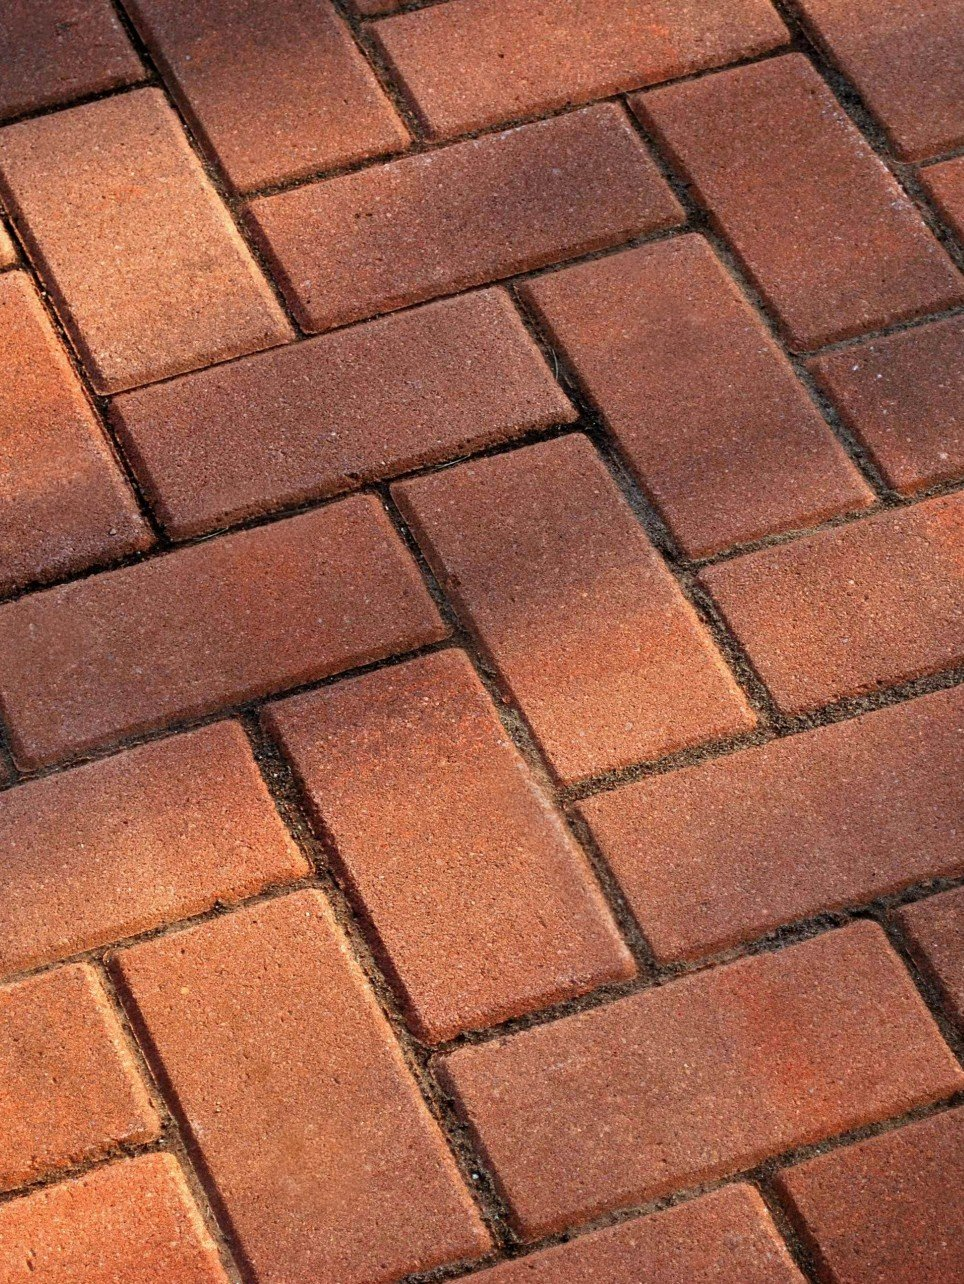 Block Paving Companies Hodge Hill